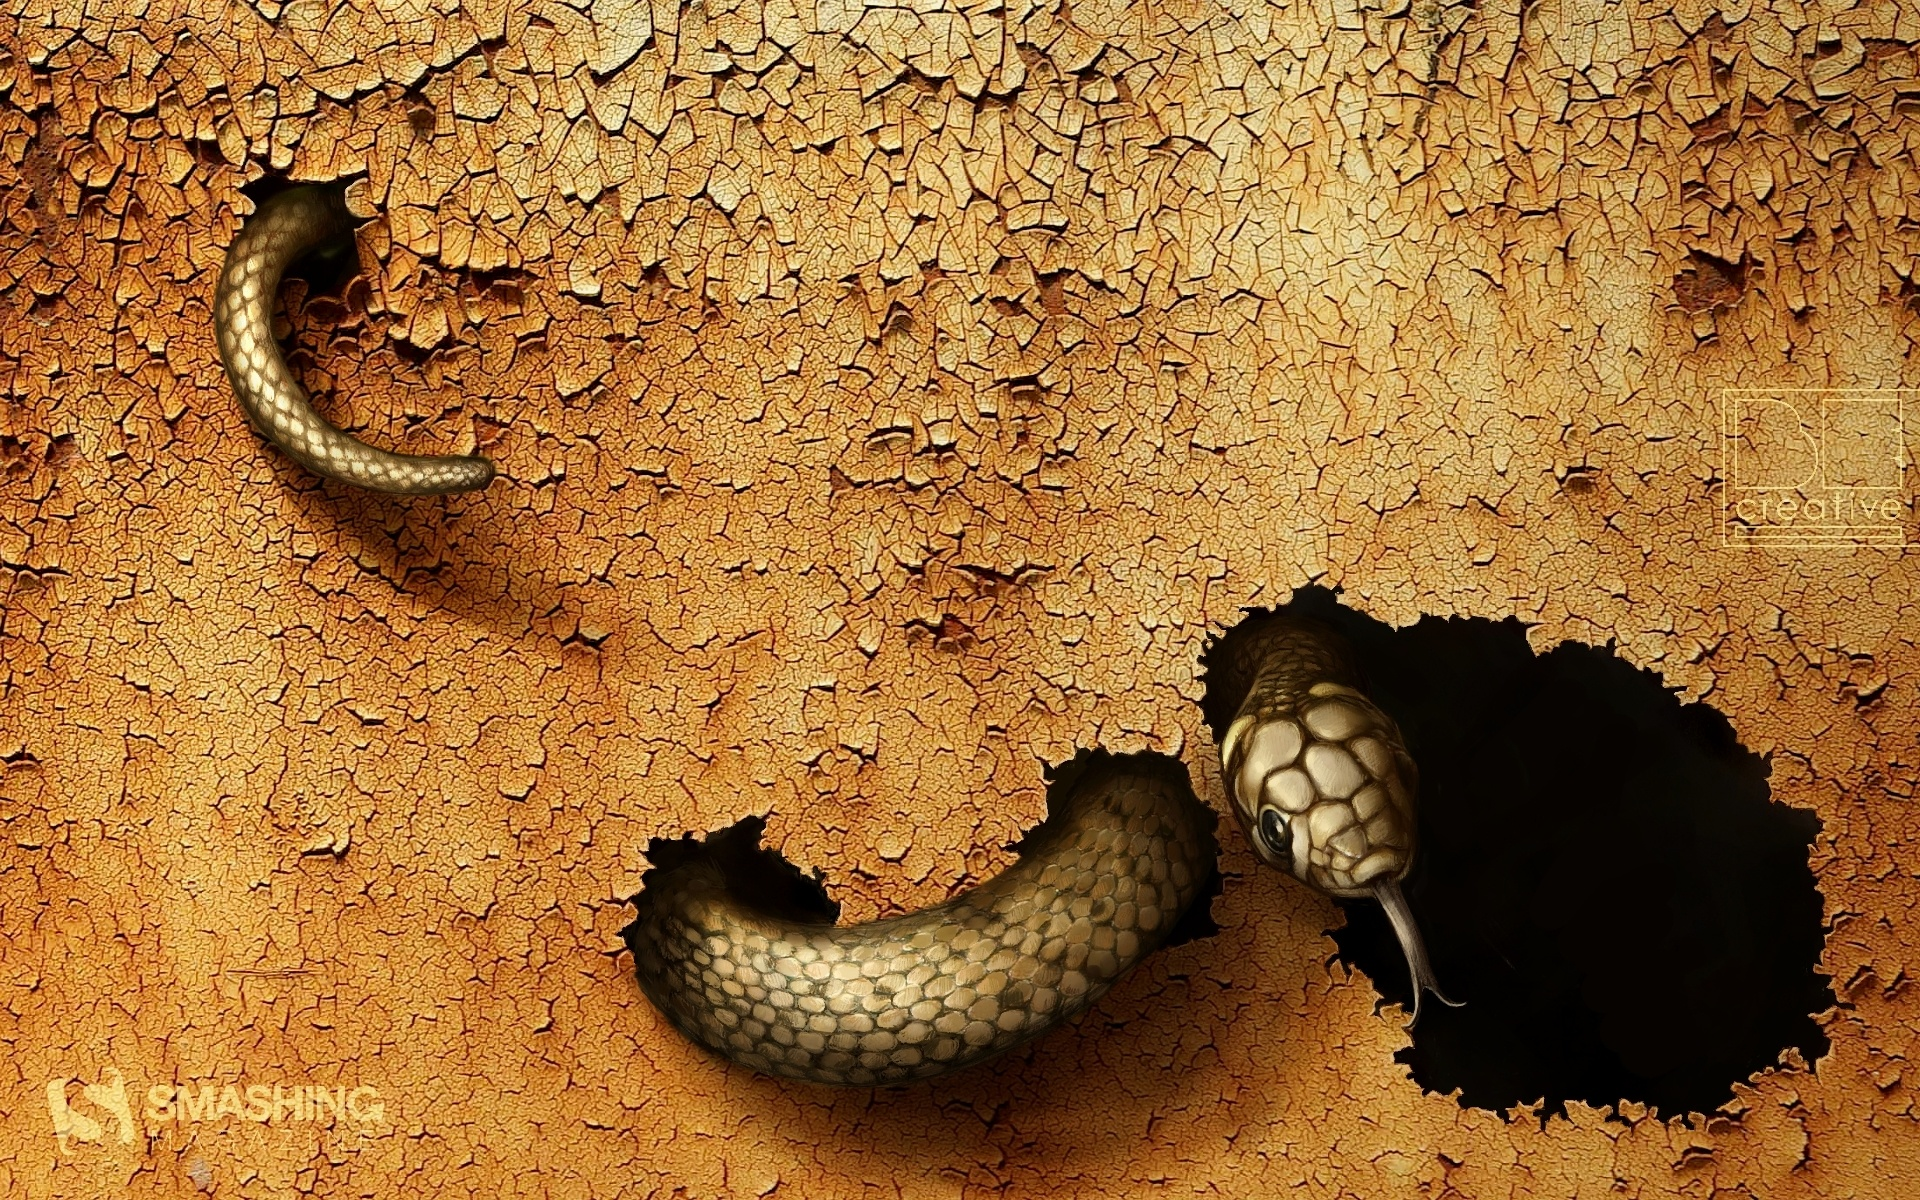 Is it dangerous for a snake to be a copperhead